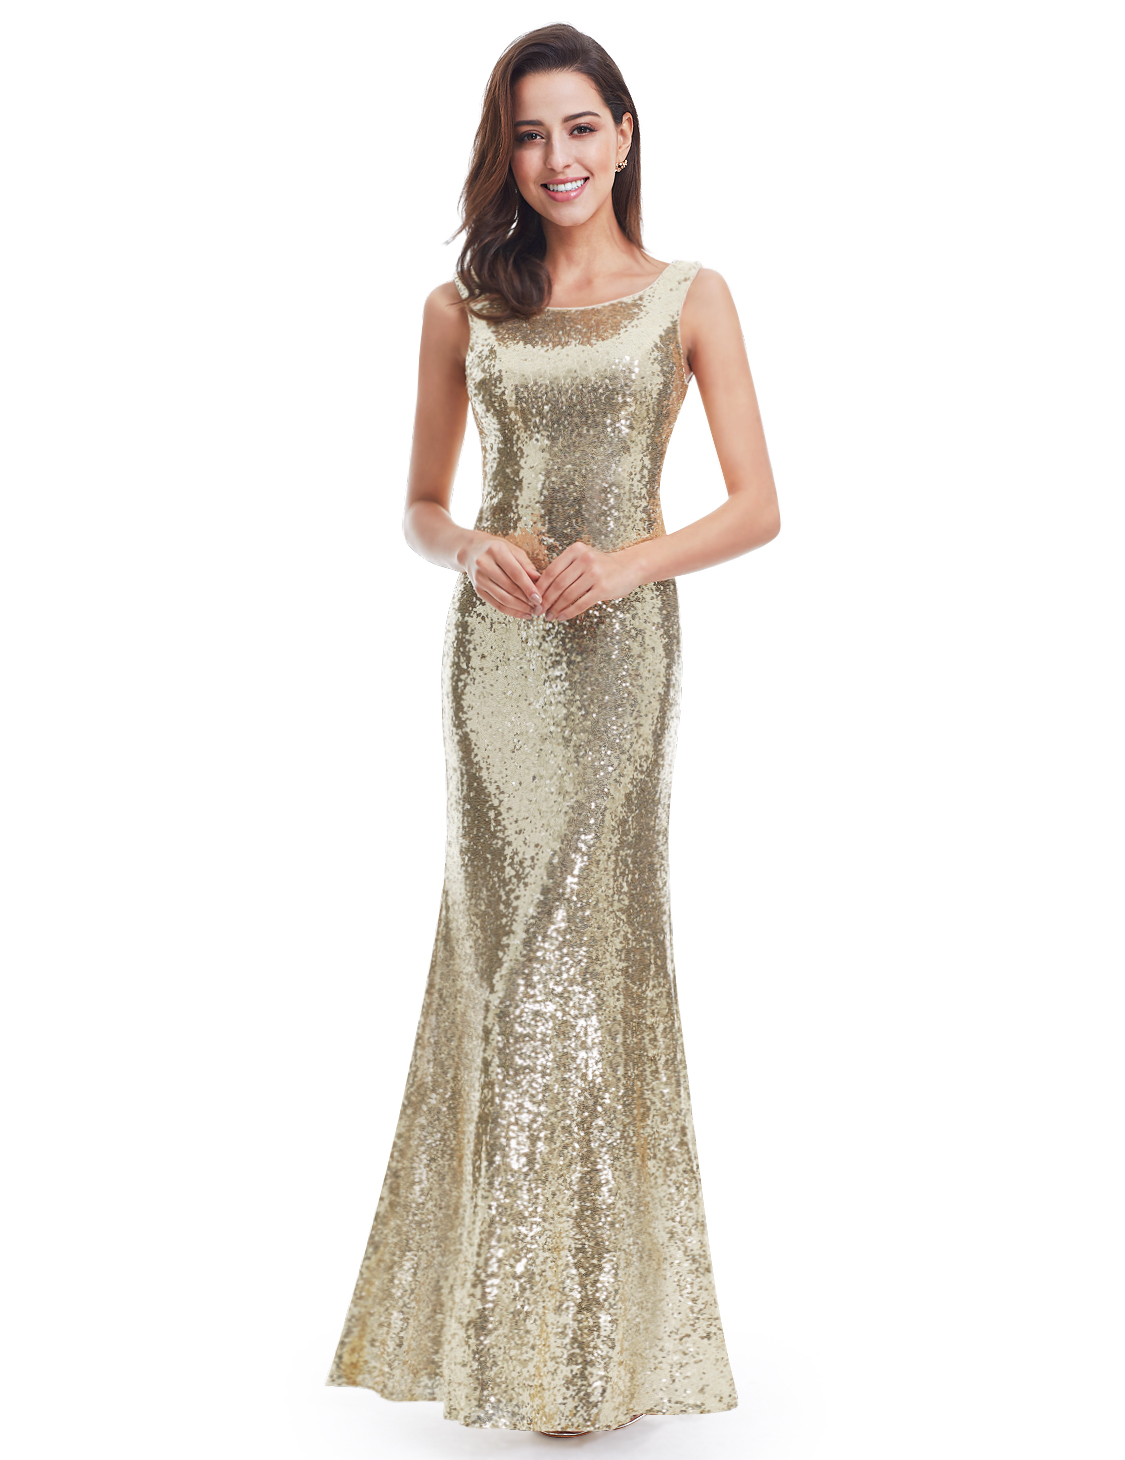 638c75a910a Details about Ever-Pretty US Long Sequins Evening Dresses Glitter  Sleeveless Party Gowns 07110